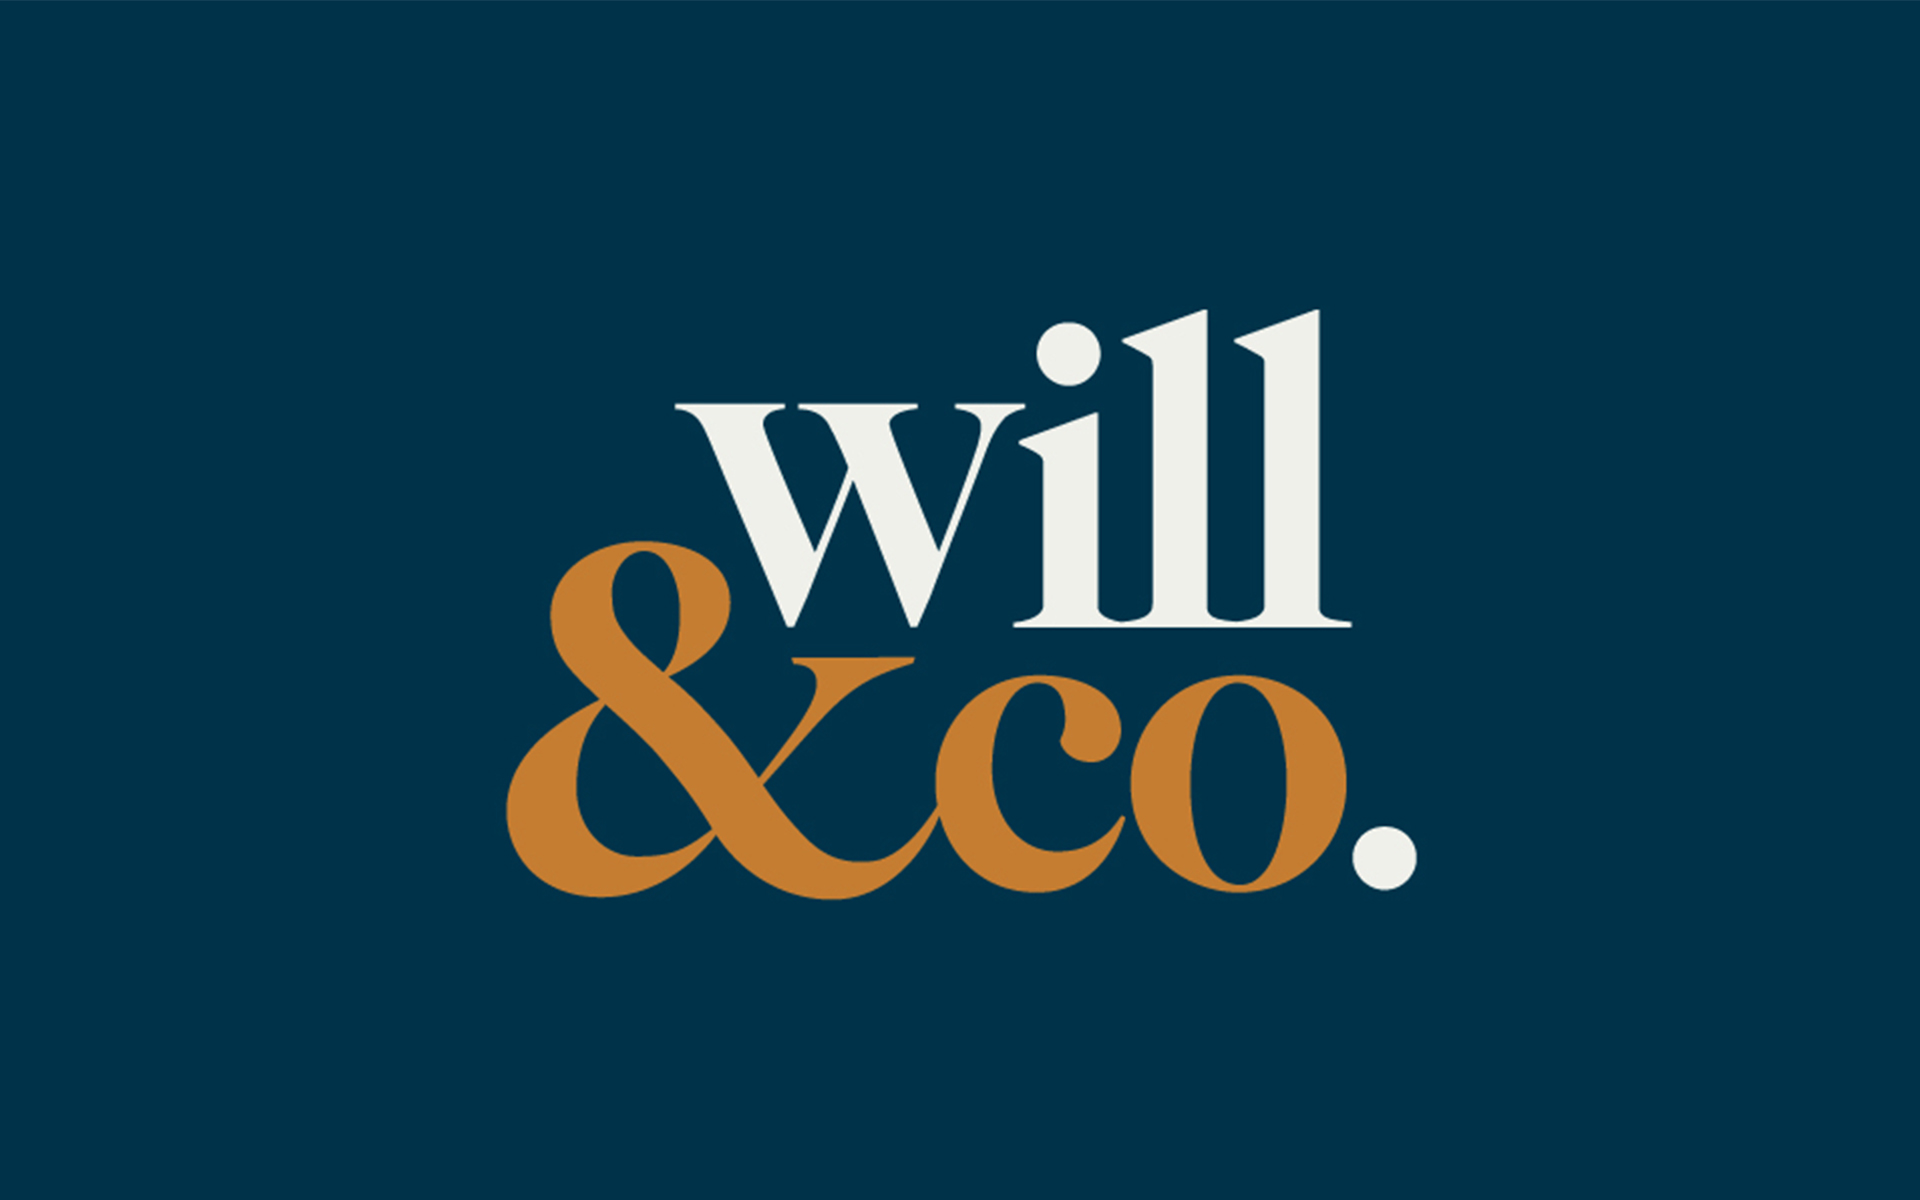 will&co.